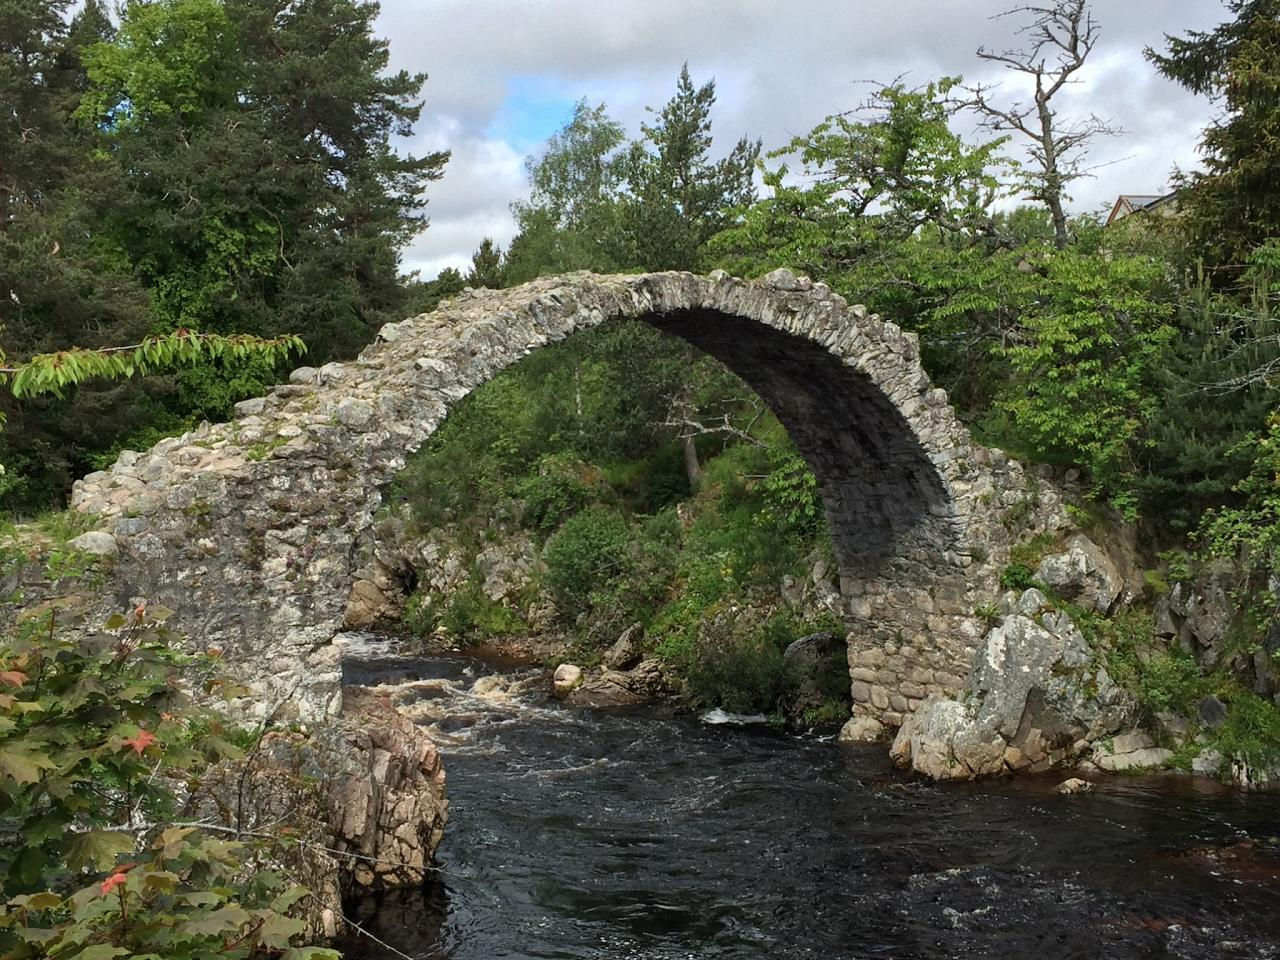 Carr Bridge, Scotland, Scottish Highlands, Scottish Islands, Scotland Birding Tour, Scotland Nature Tour, Naturalist Journeys